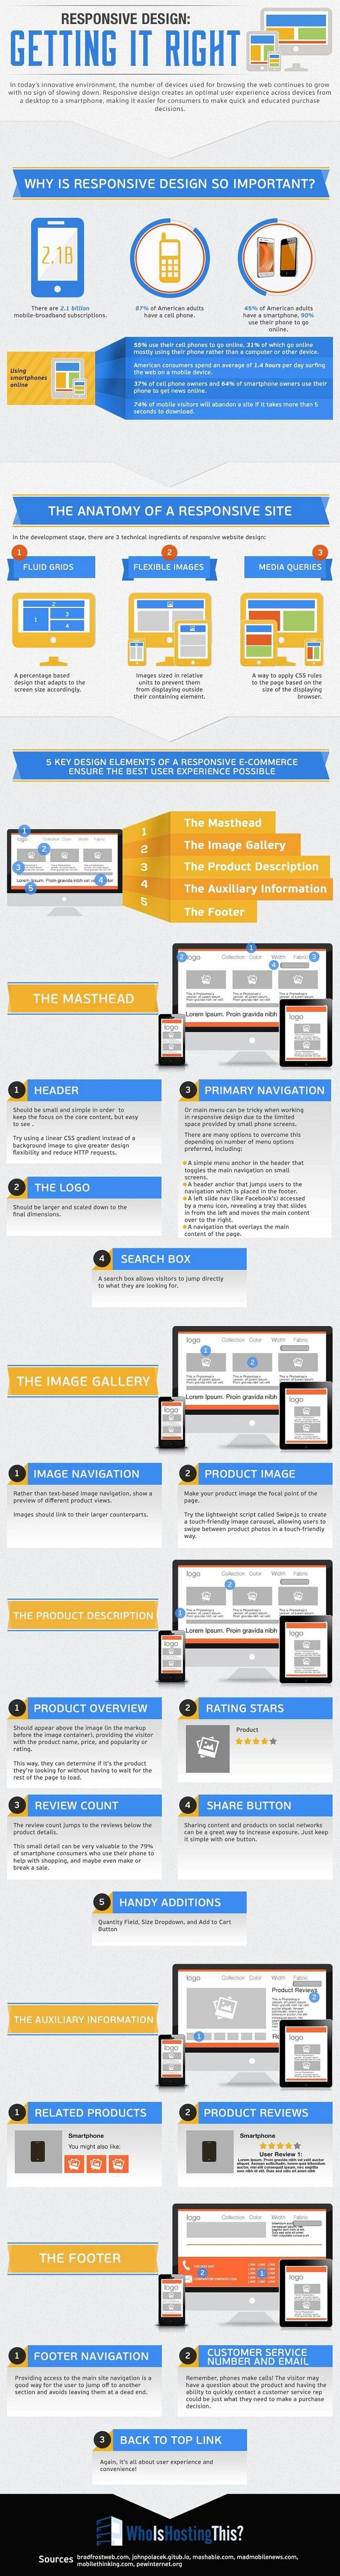 How to Do Responsive Web Design Right [Infographic] http://www.marketingprofs.com/chirp/2013/11789/how-to-do-responsive-web-design-right-infographic via @marketingprofs